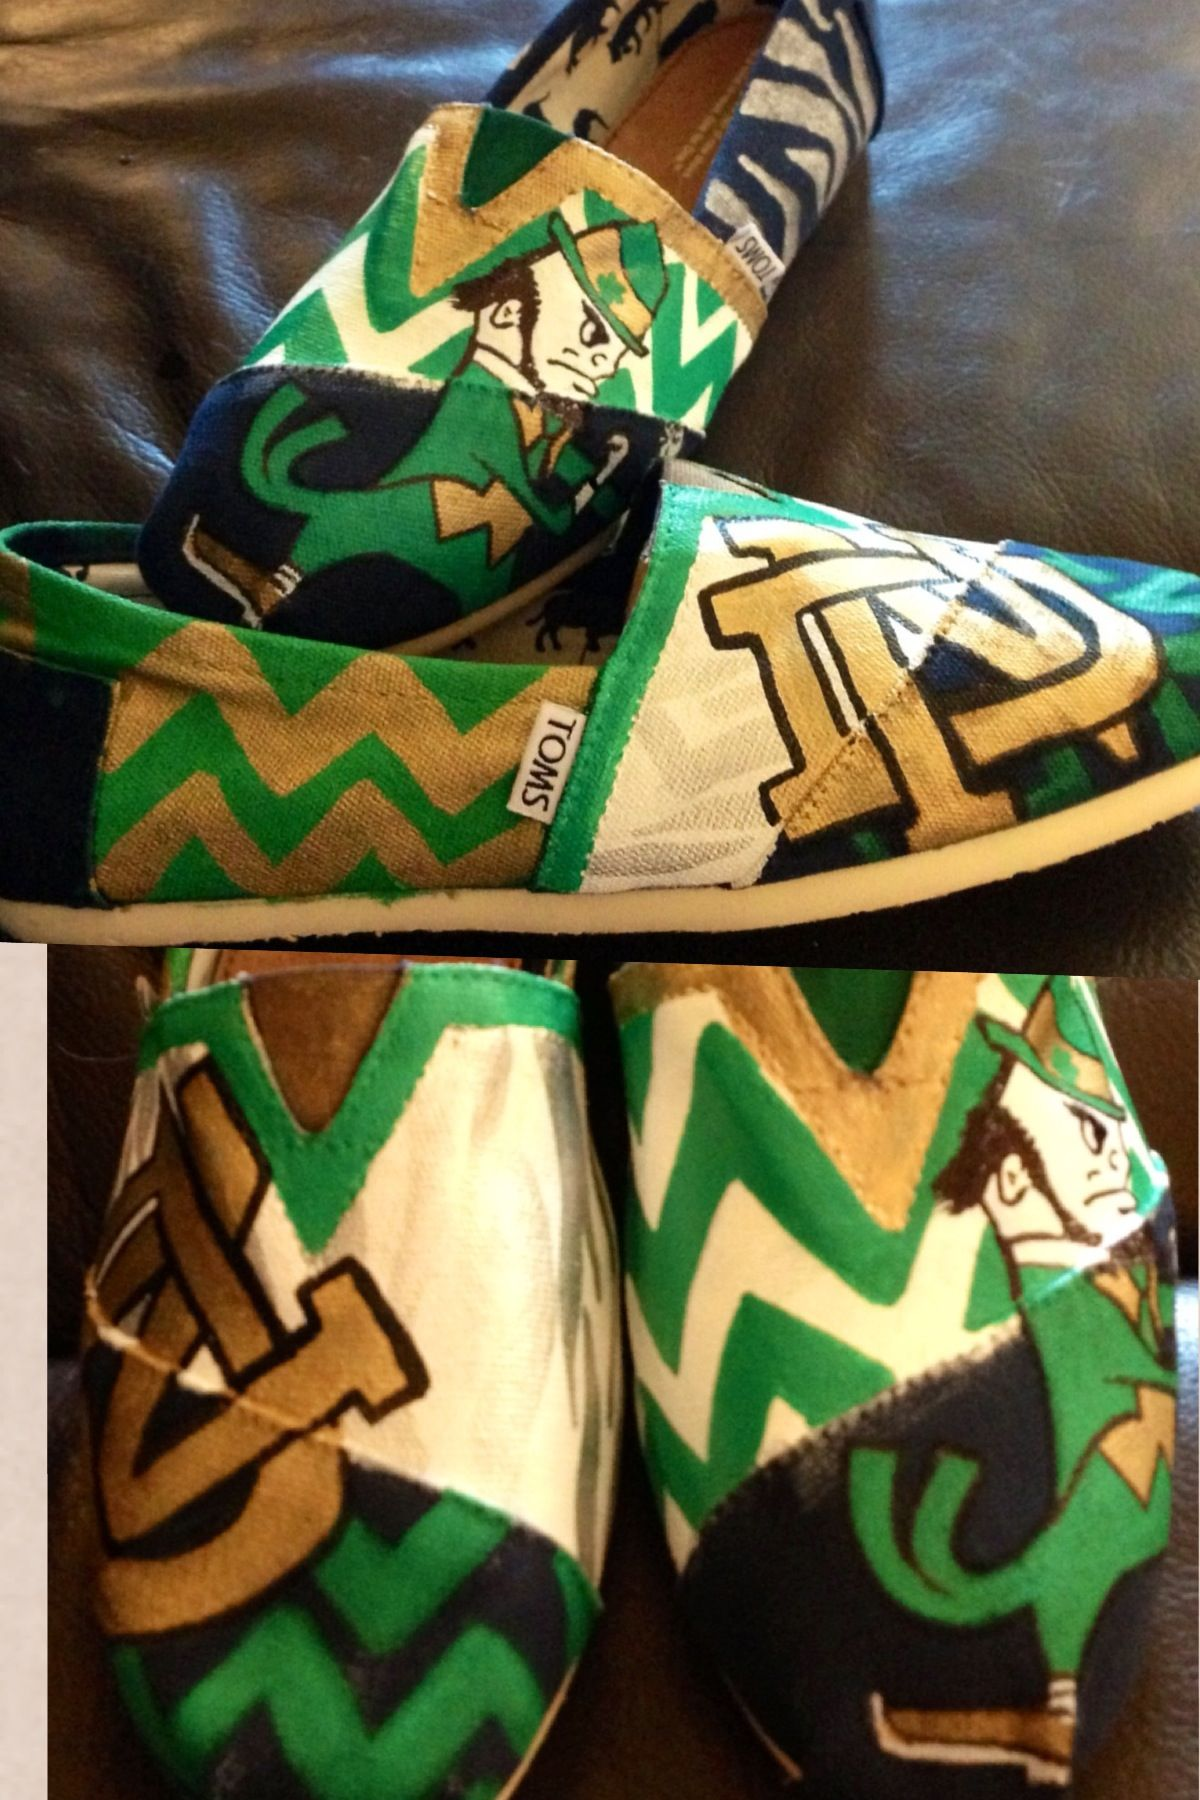 Notre dame nike shoes